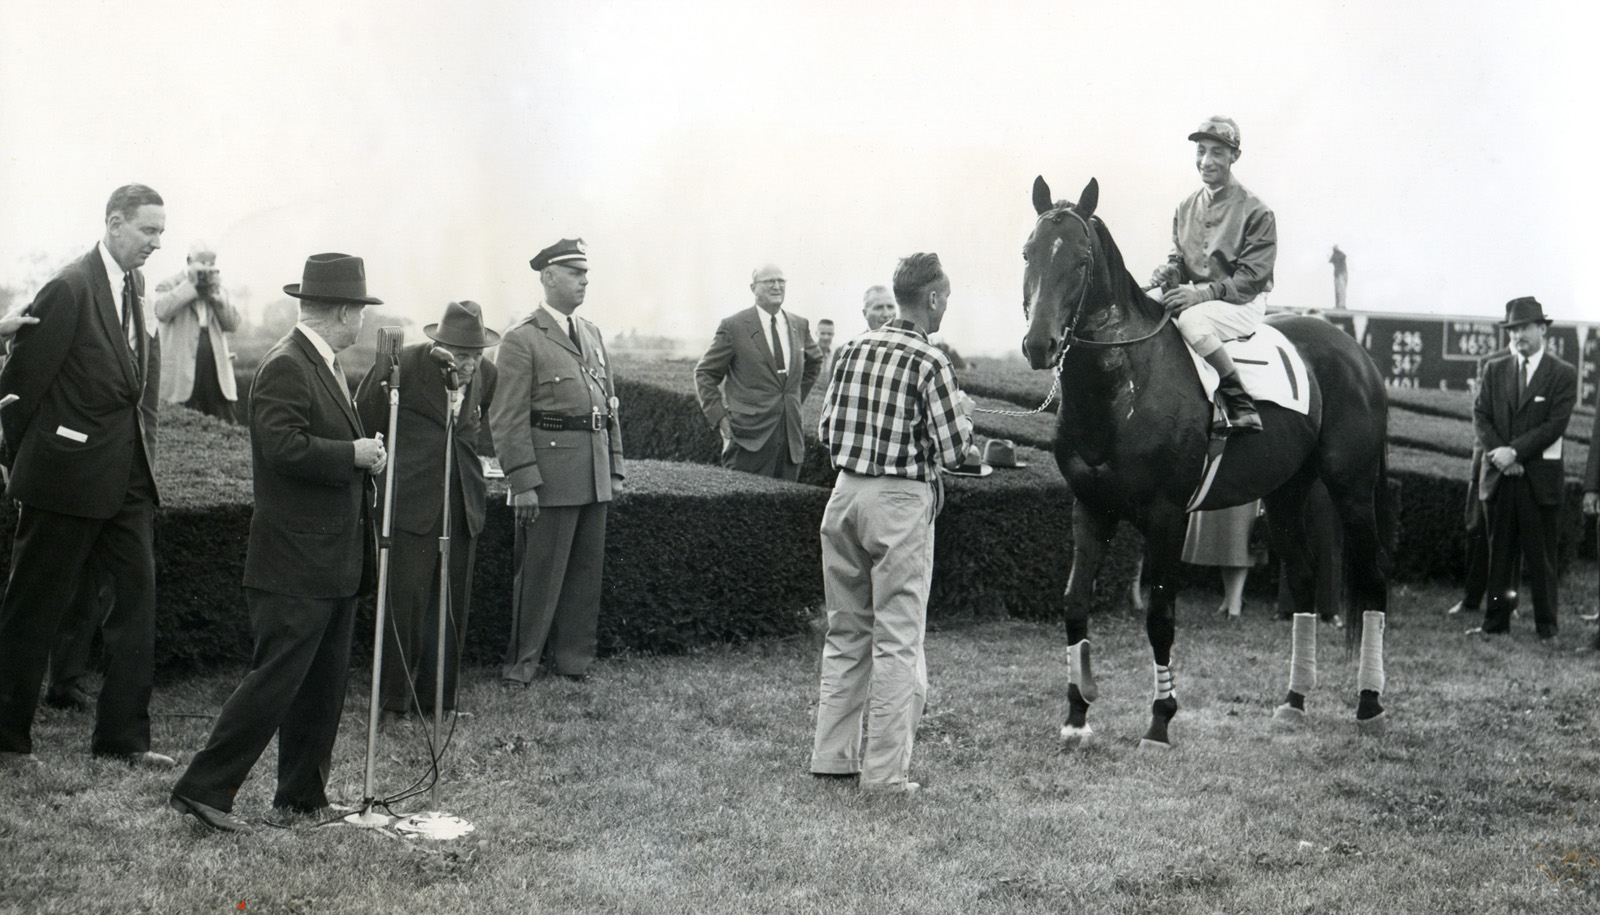 """Nashua's farewell appearance at Keeneland with Eddie Arcaro up and trainer """"Sunny Jim"""" Fitzsimmons in attendance, October 1956 (Museum Collection)"""